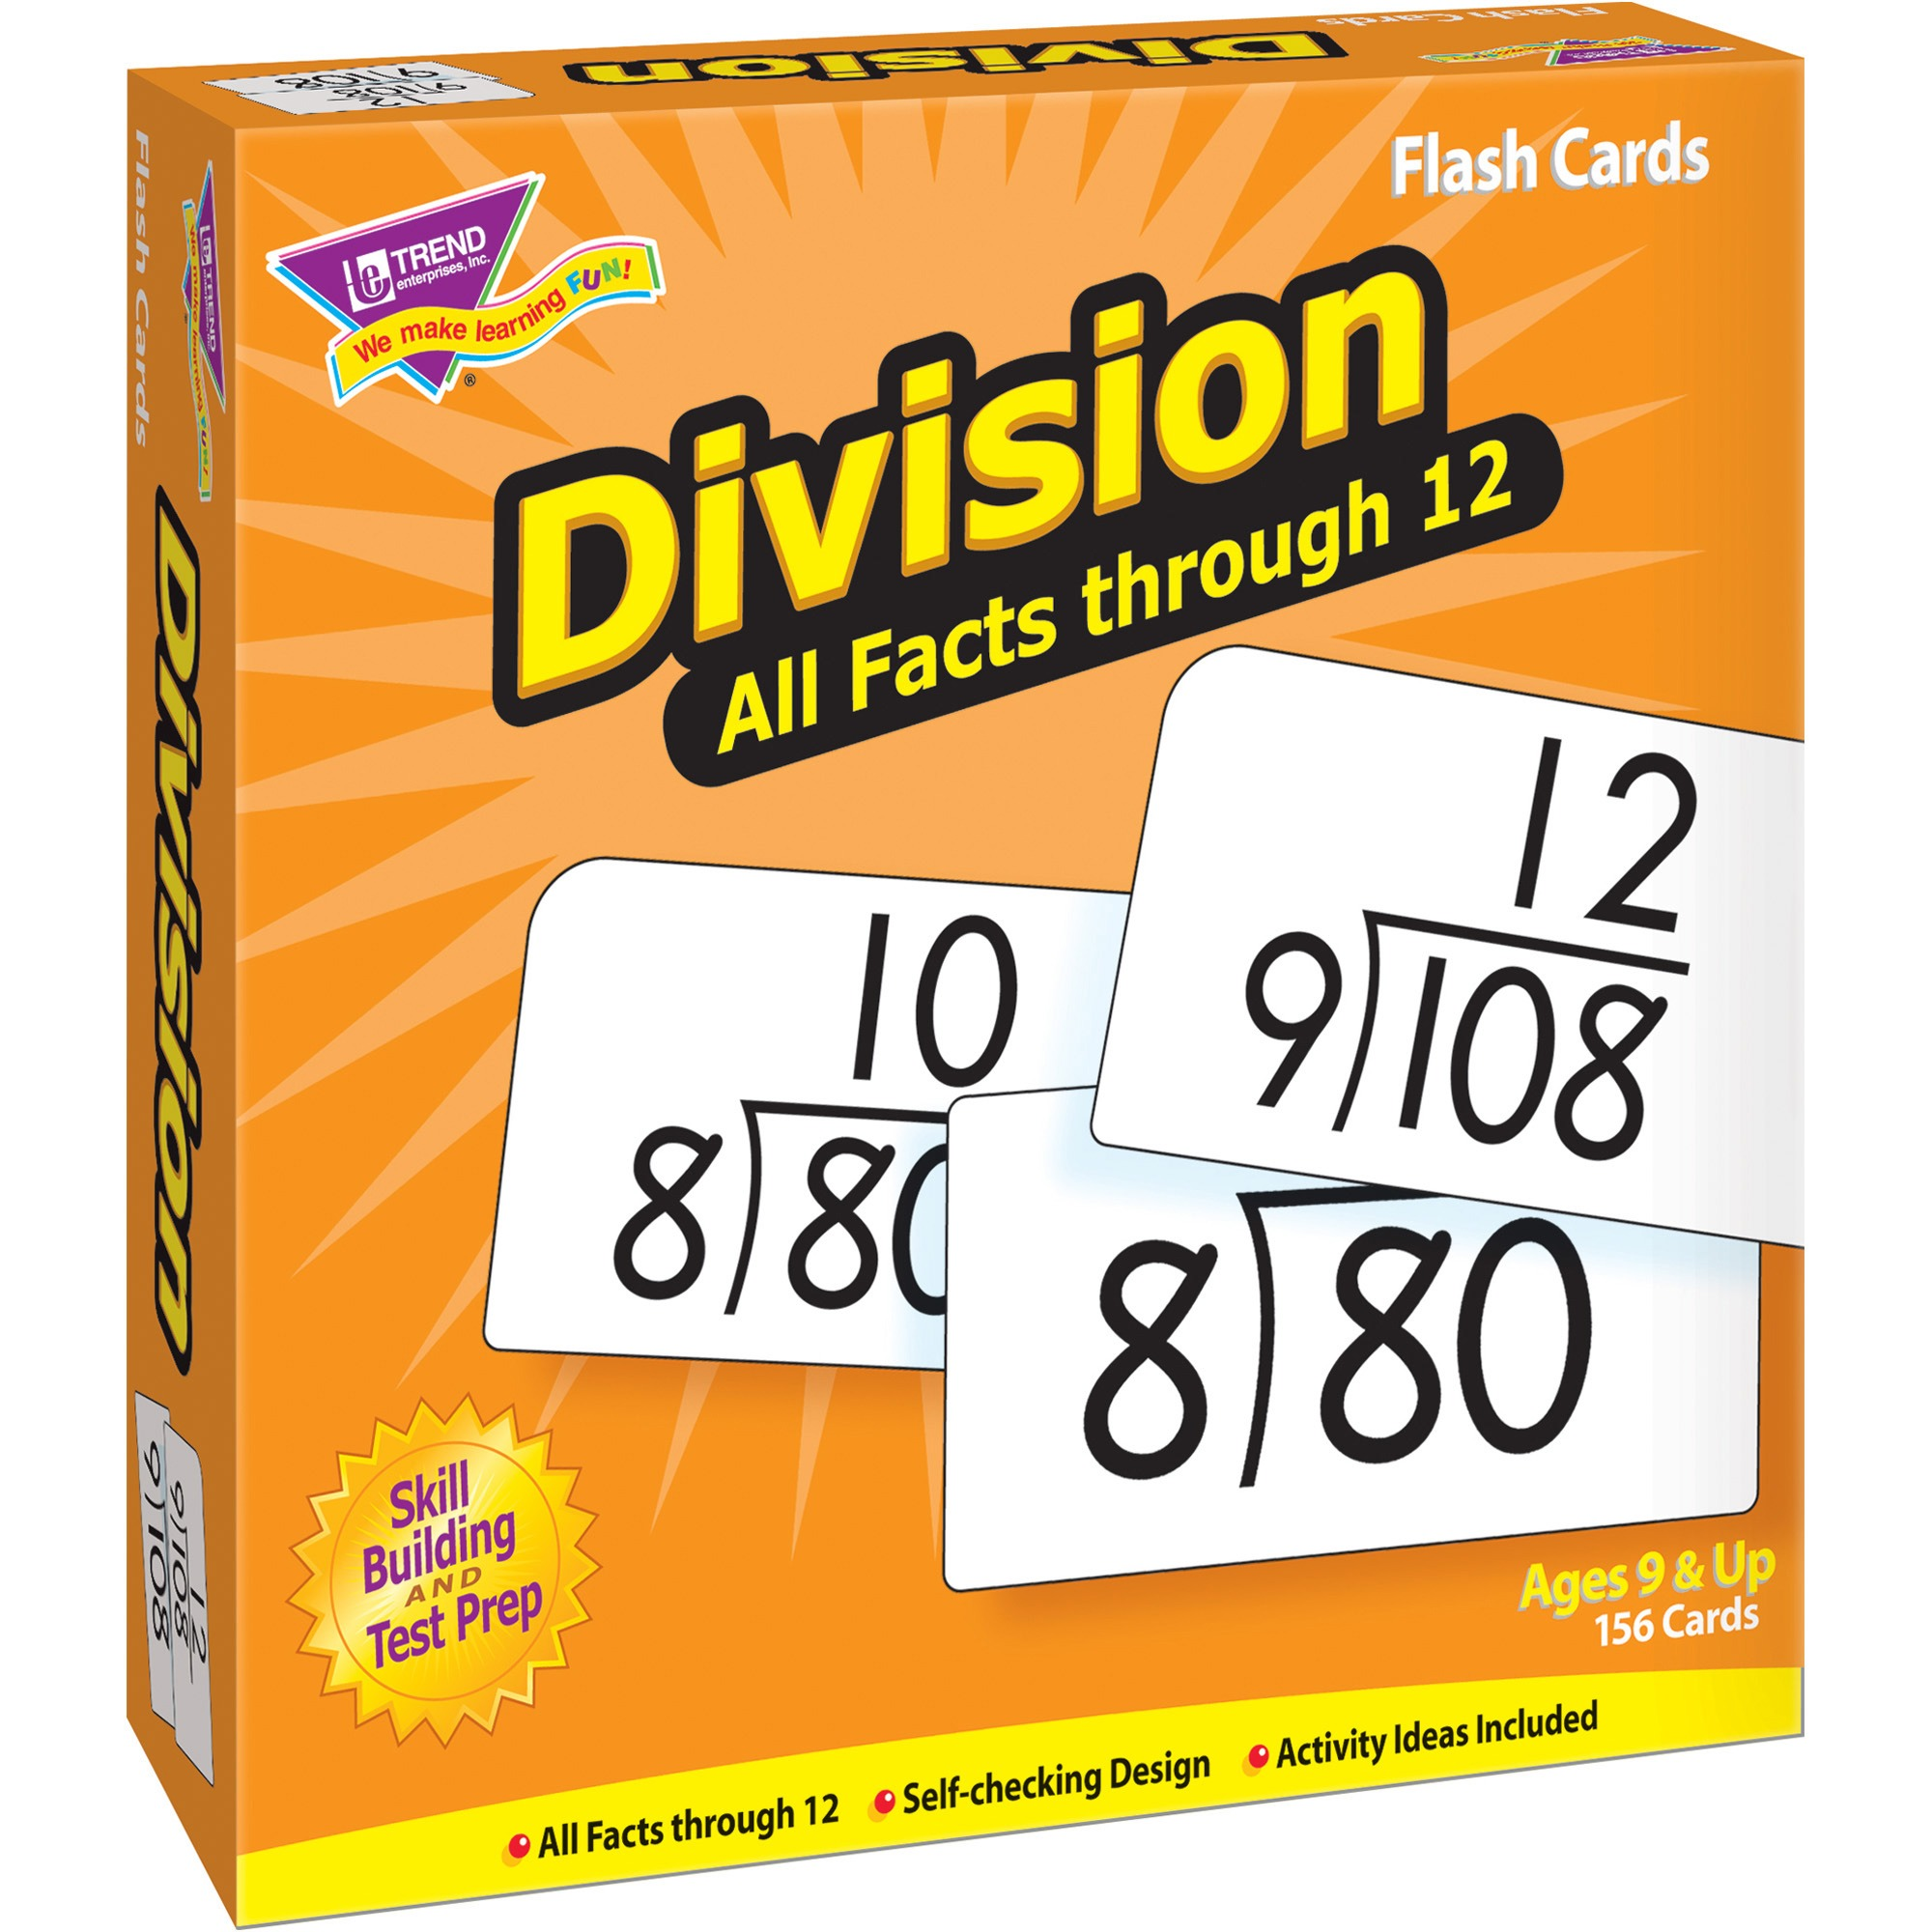 Trend Division all facts through 12 Flash Cards